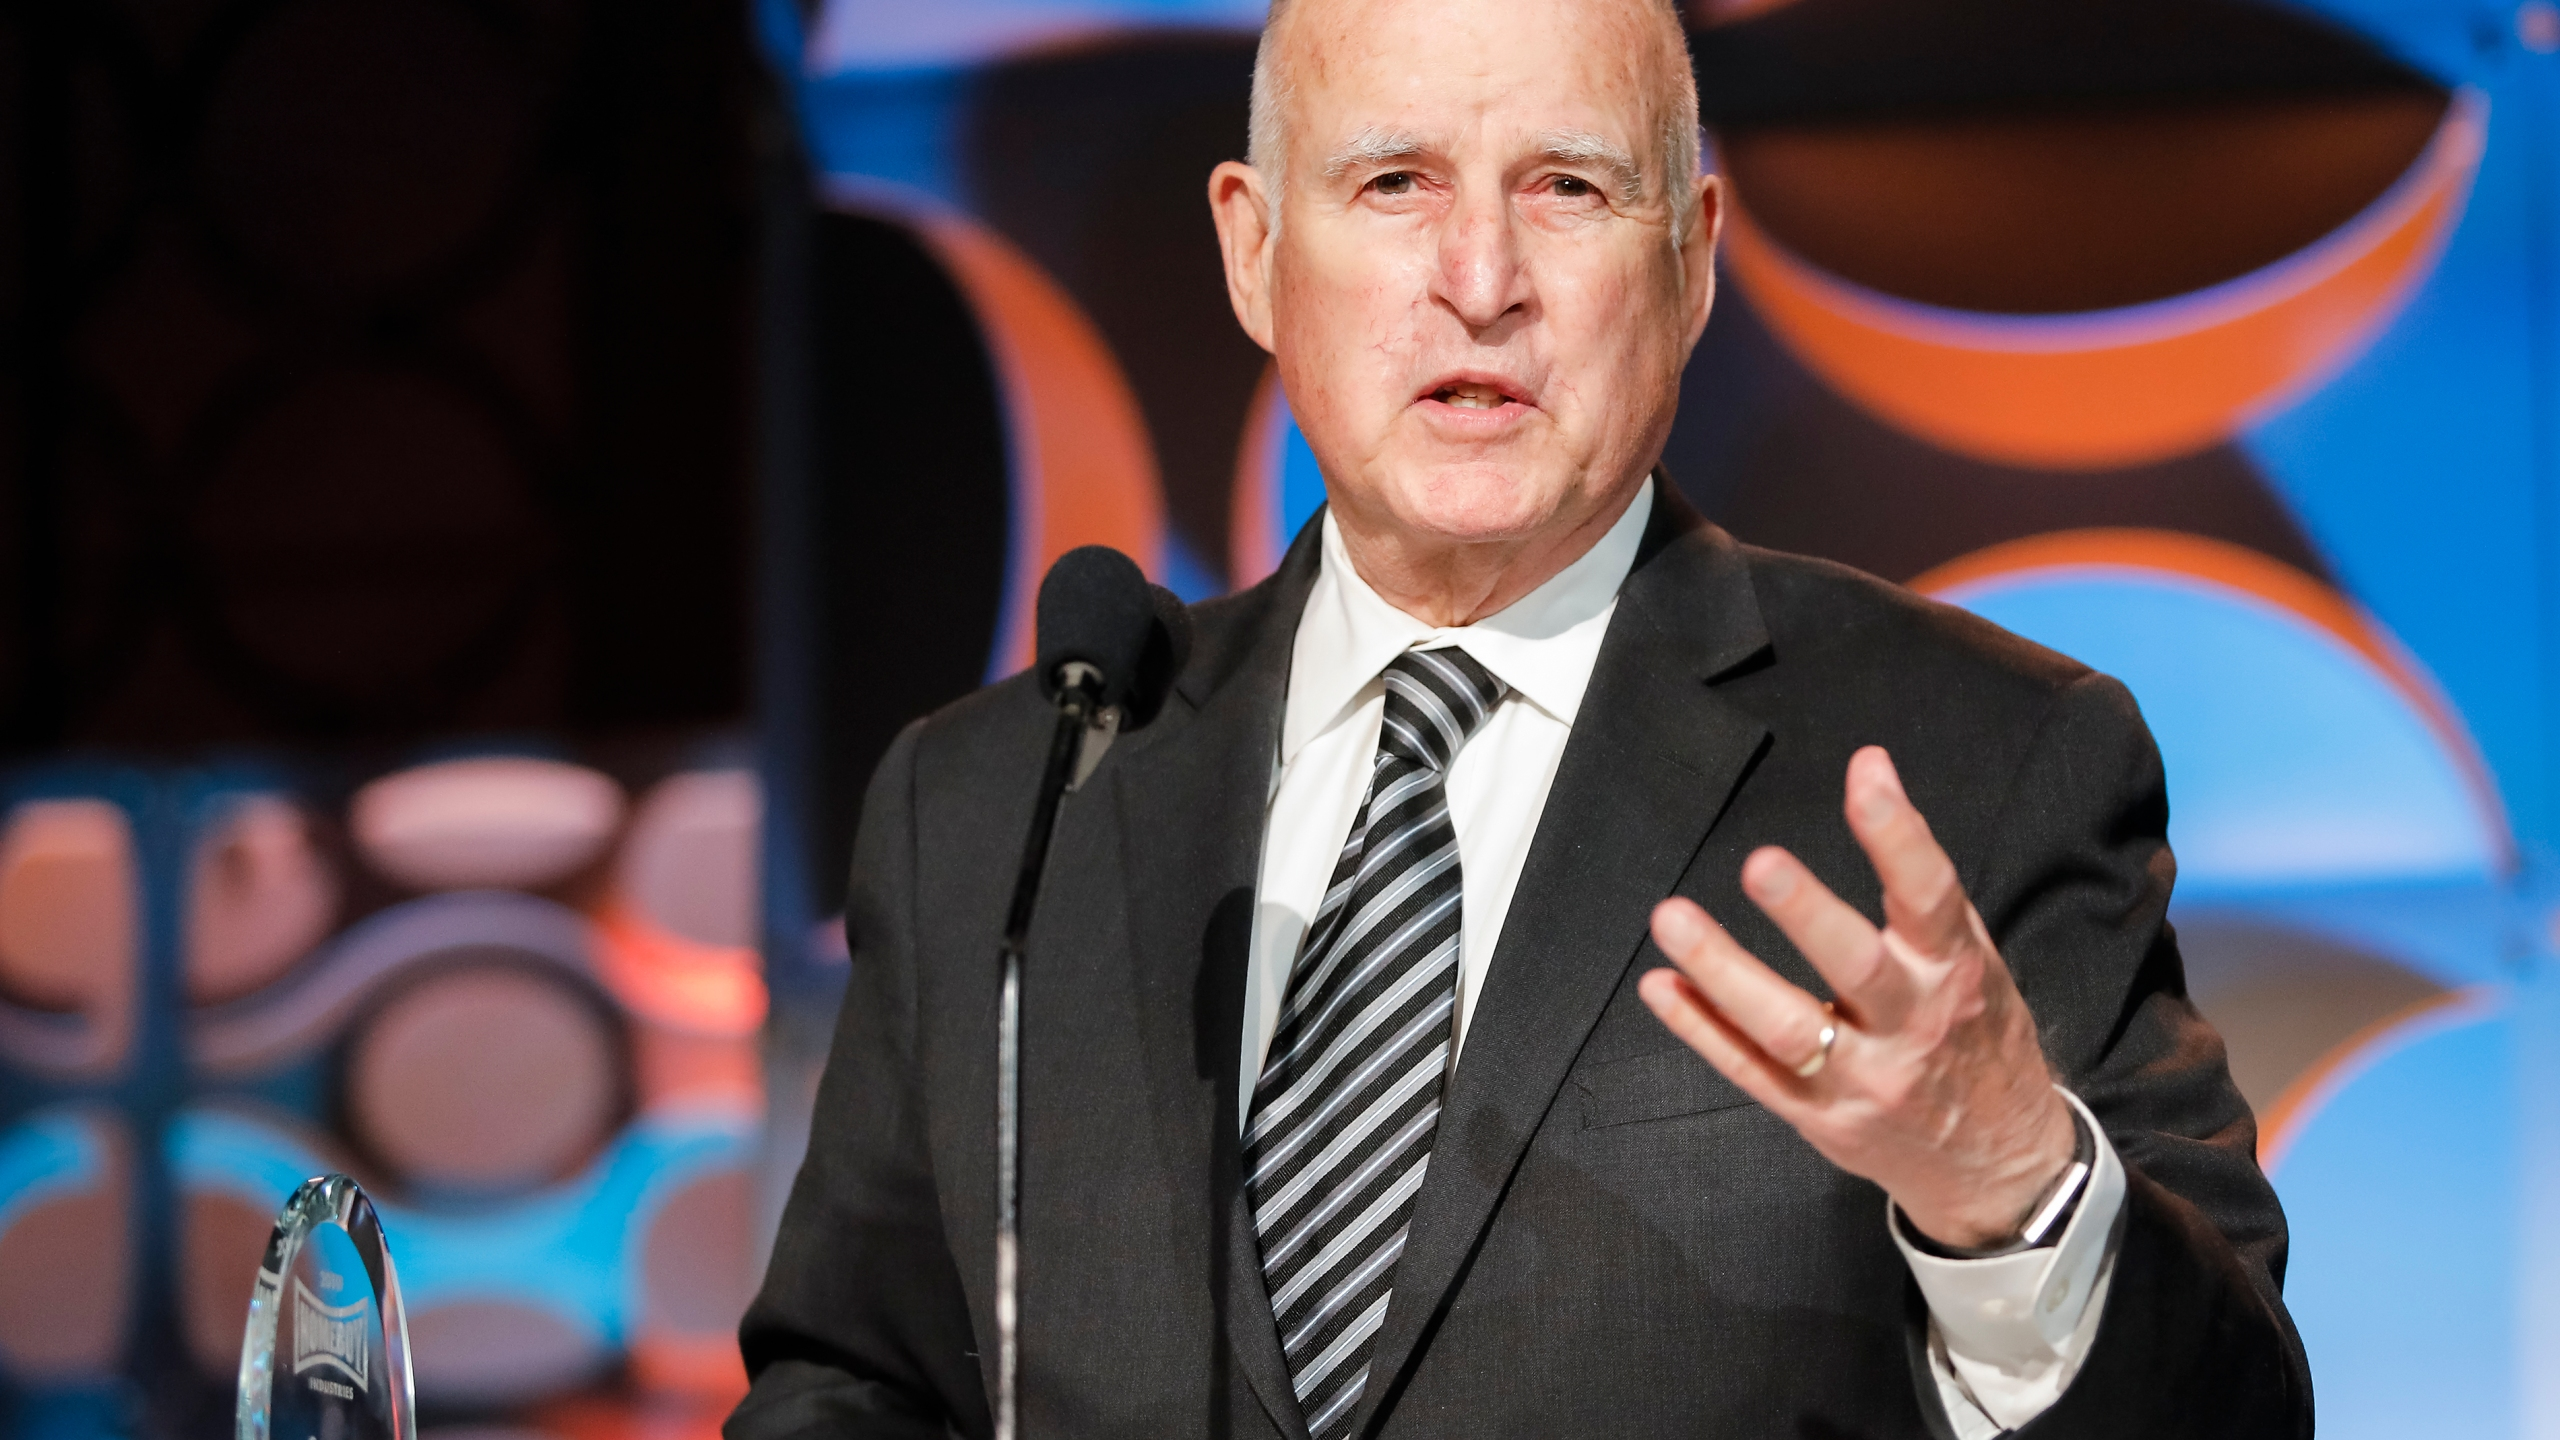 Governor Jerry Brown receives an awards at the Homeboy Industries 2019 Lo Máximo Awards Dinner at JW Marriott Los Angeles at L.A. LIVE on March 30, 2019, in Los Angeles. (Credit: Tibrina Hobson/Getty Images for Homeboy Industries)